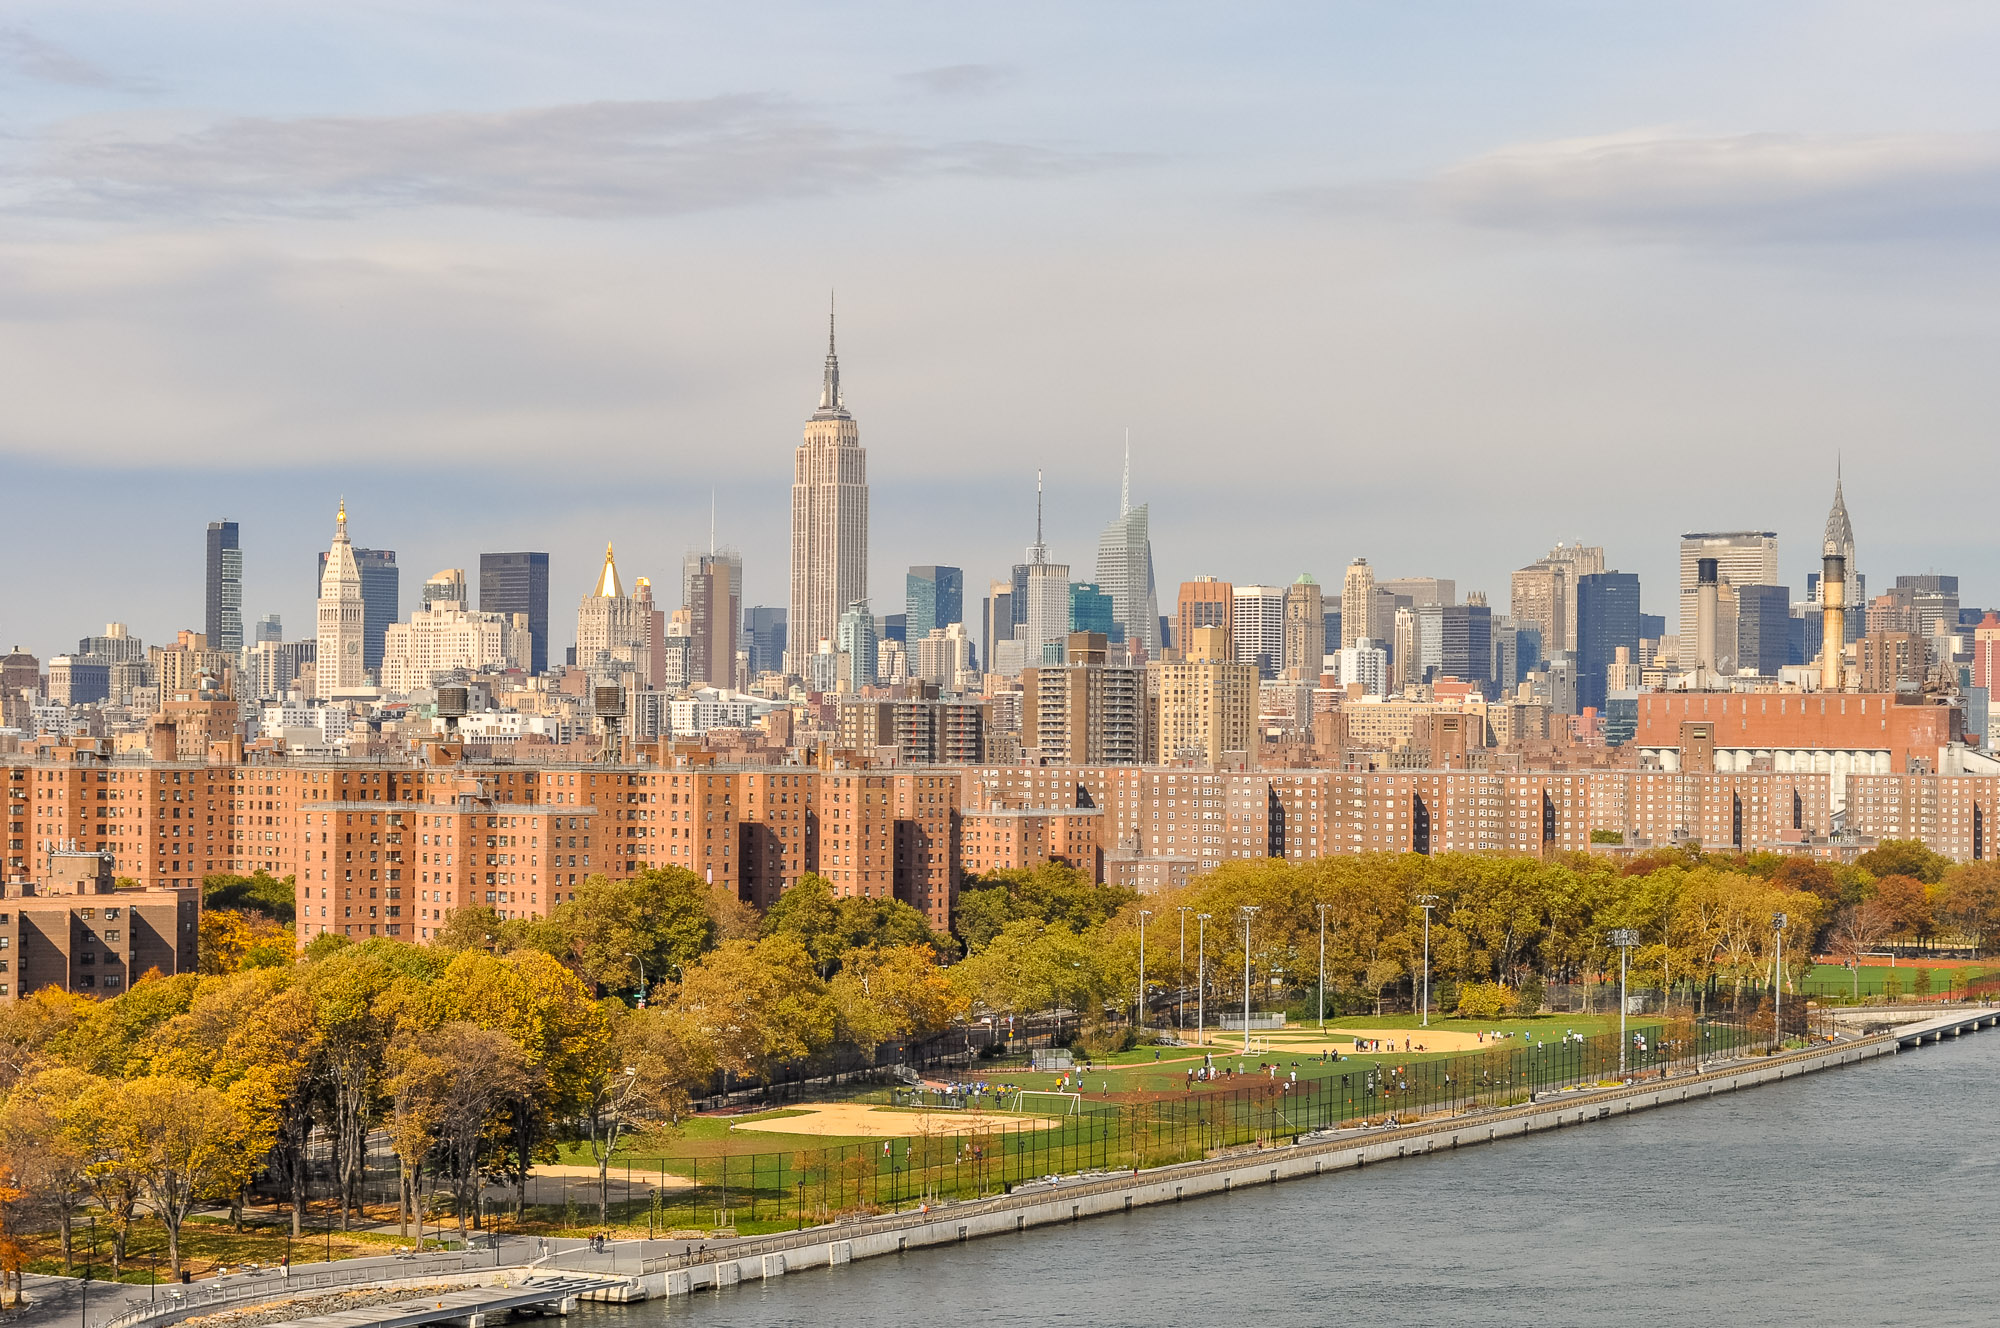 Dozens of brown public housing buildings are shown in the foreground with midtown Manhattan's skyline in the background.